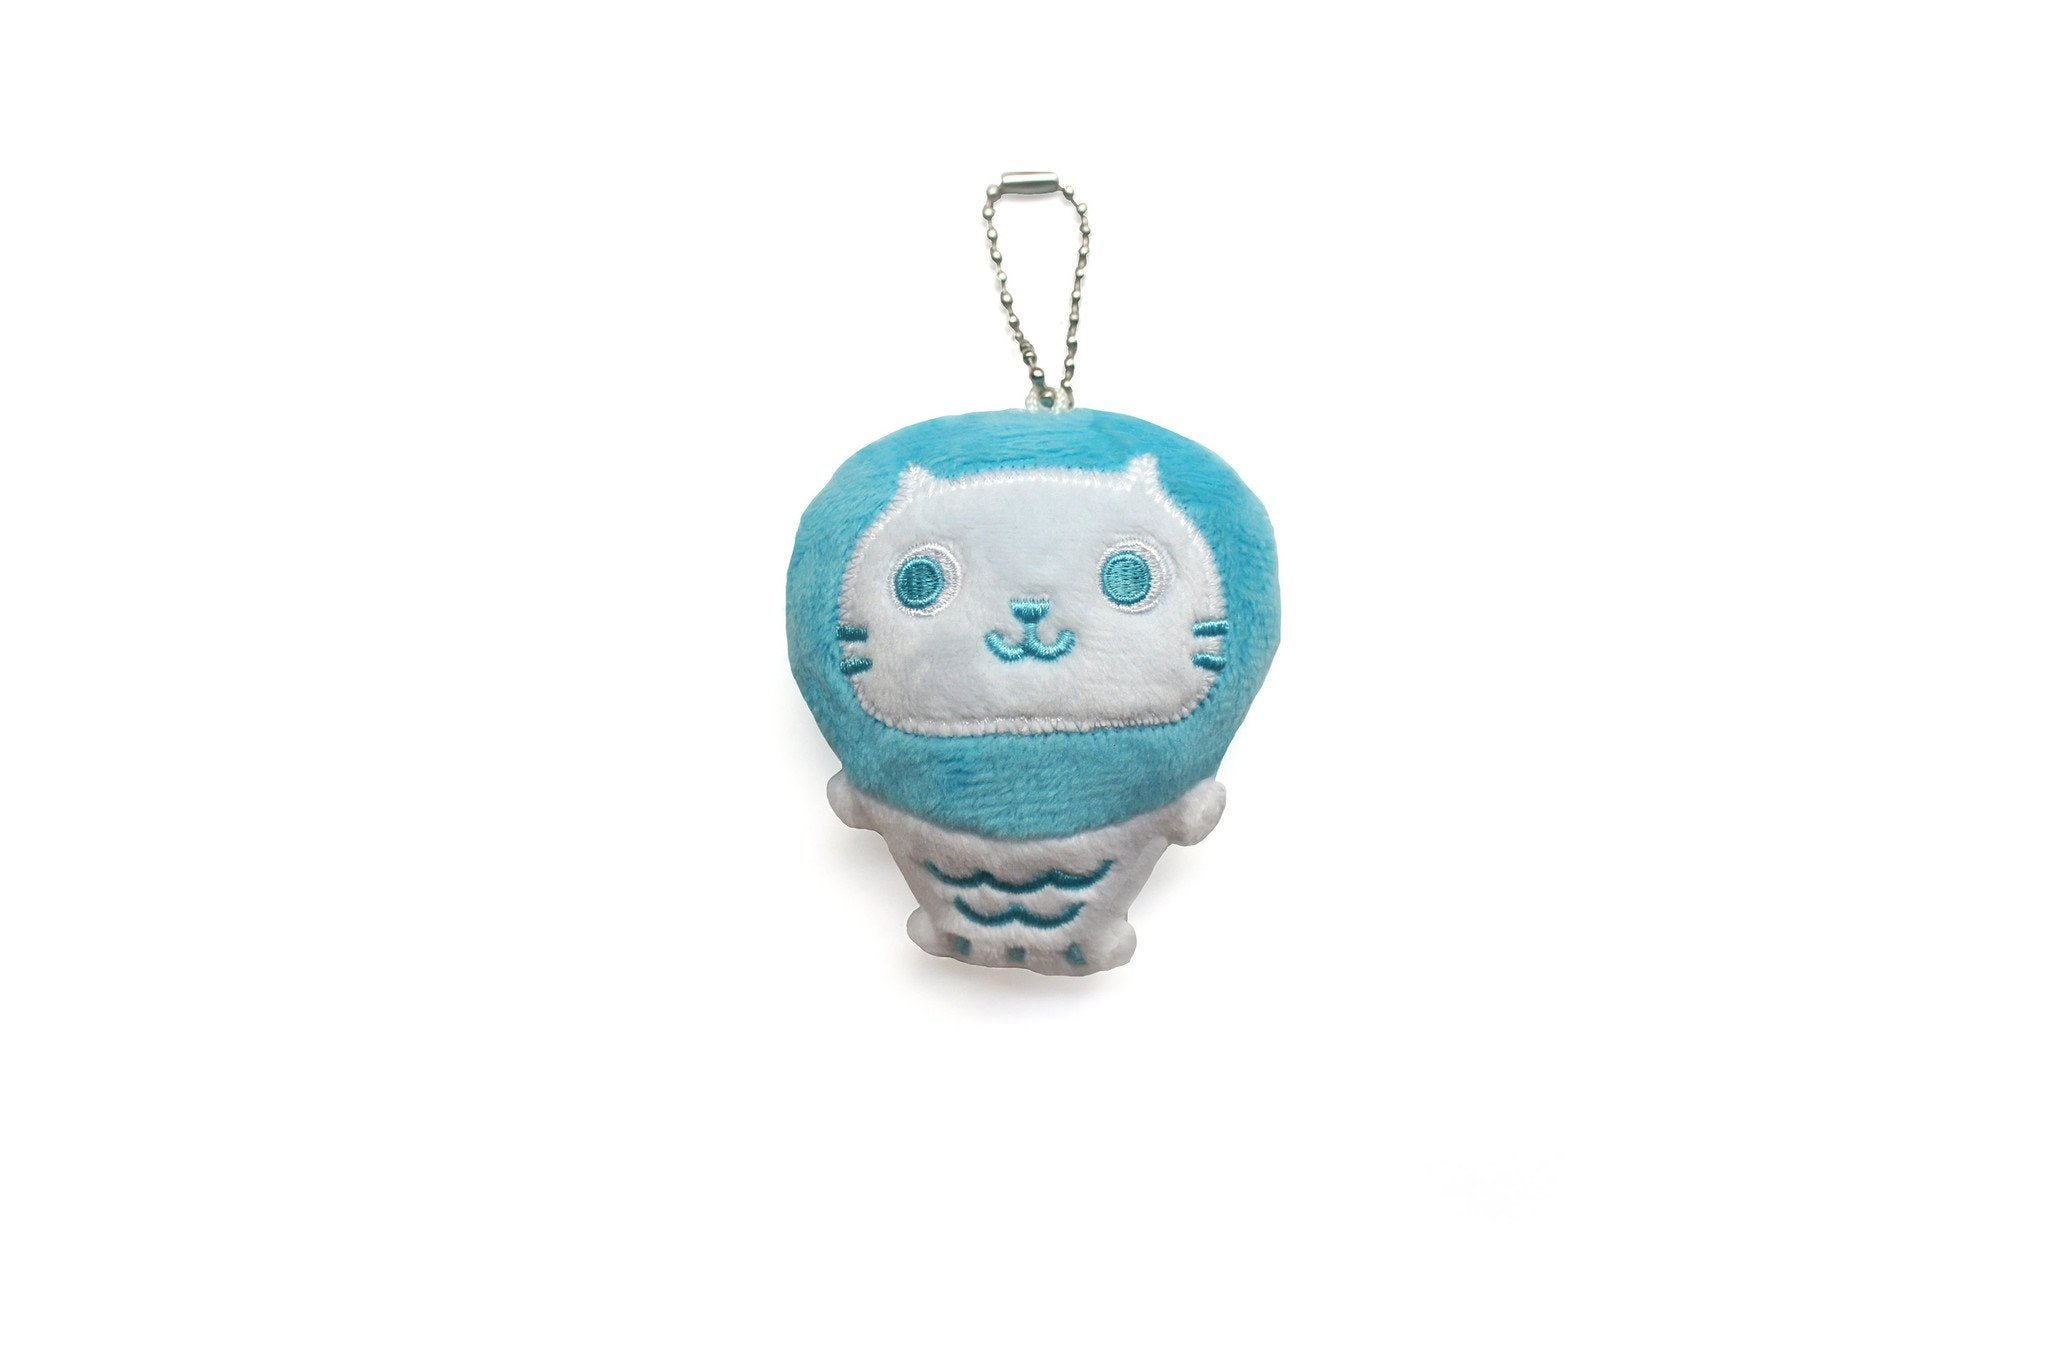 Mer Mer the Merlion Plush Keychain - Naiise